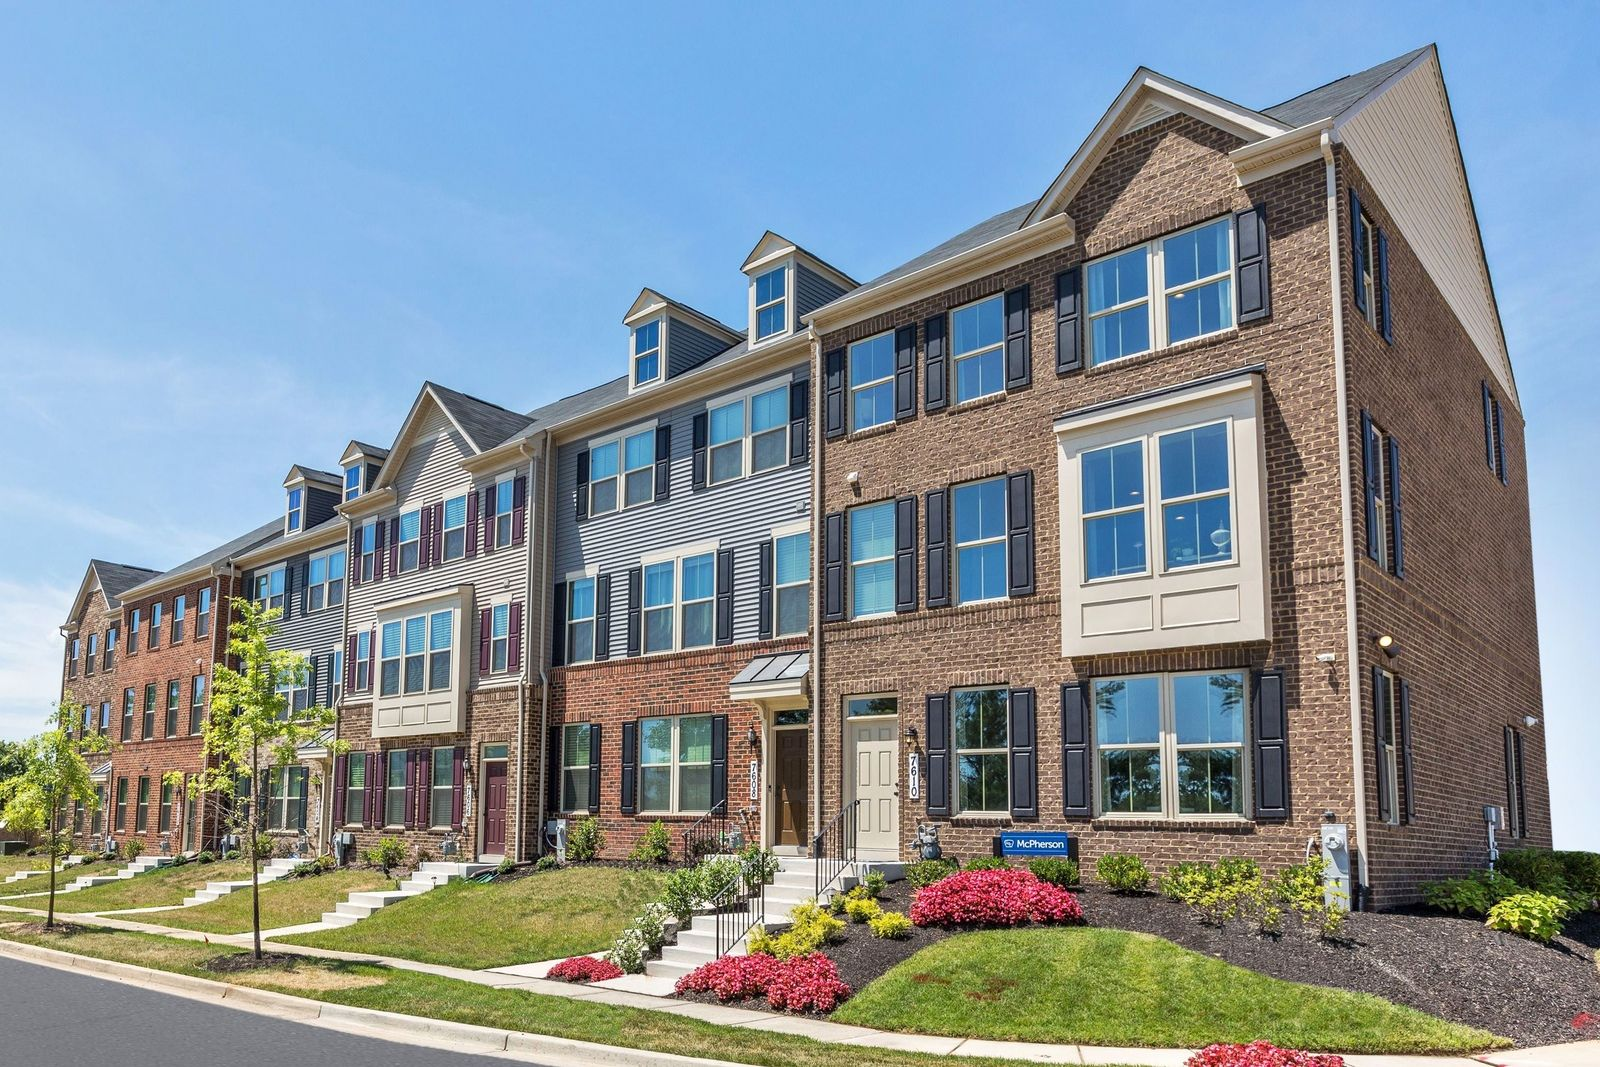 WELCOME TO BLACKBURN, TOWNHOMES FROM THE UPPER $400S!:We are open and taking extra precautions for your safety. Click hereto schedule an in-person visit, or meet with us virtually on the app of your choice.